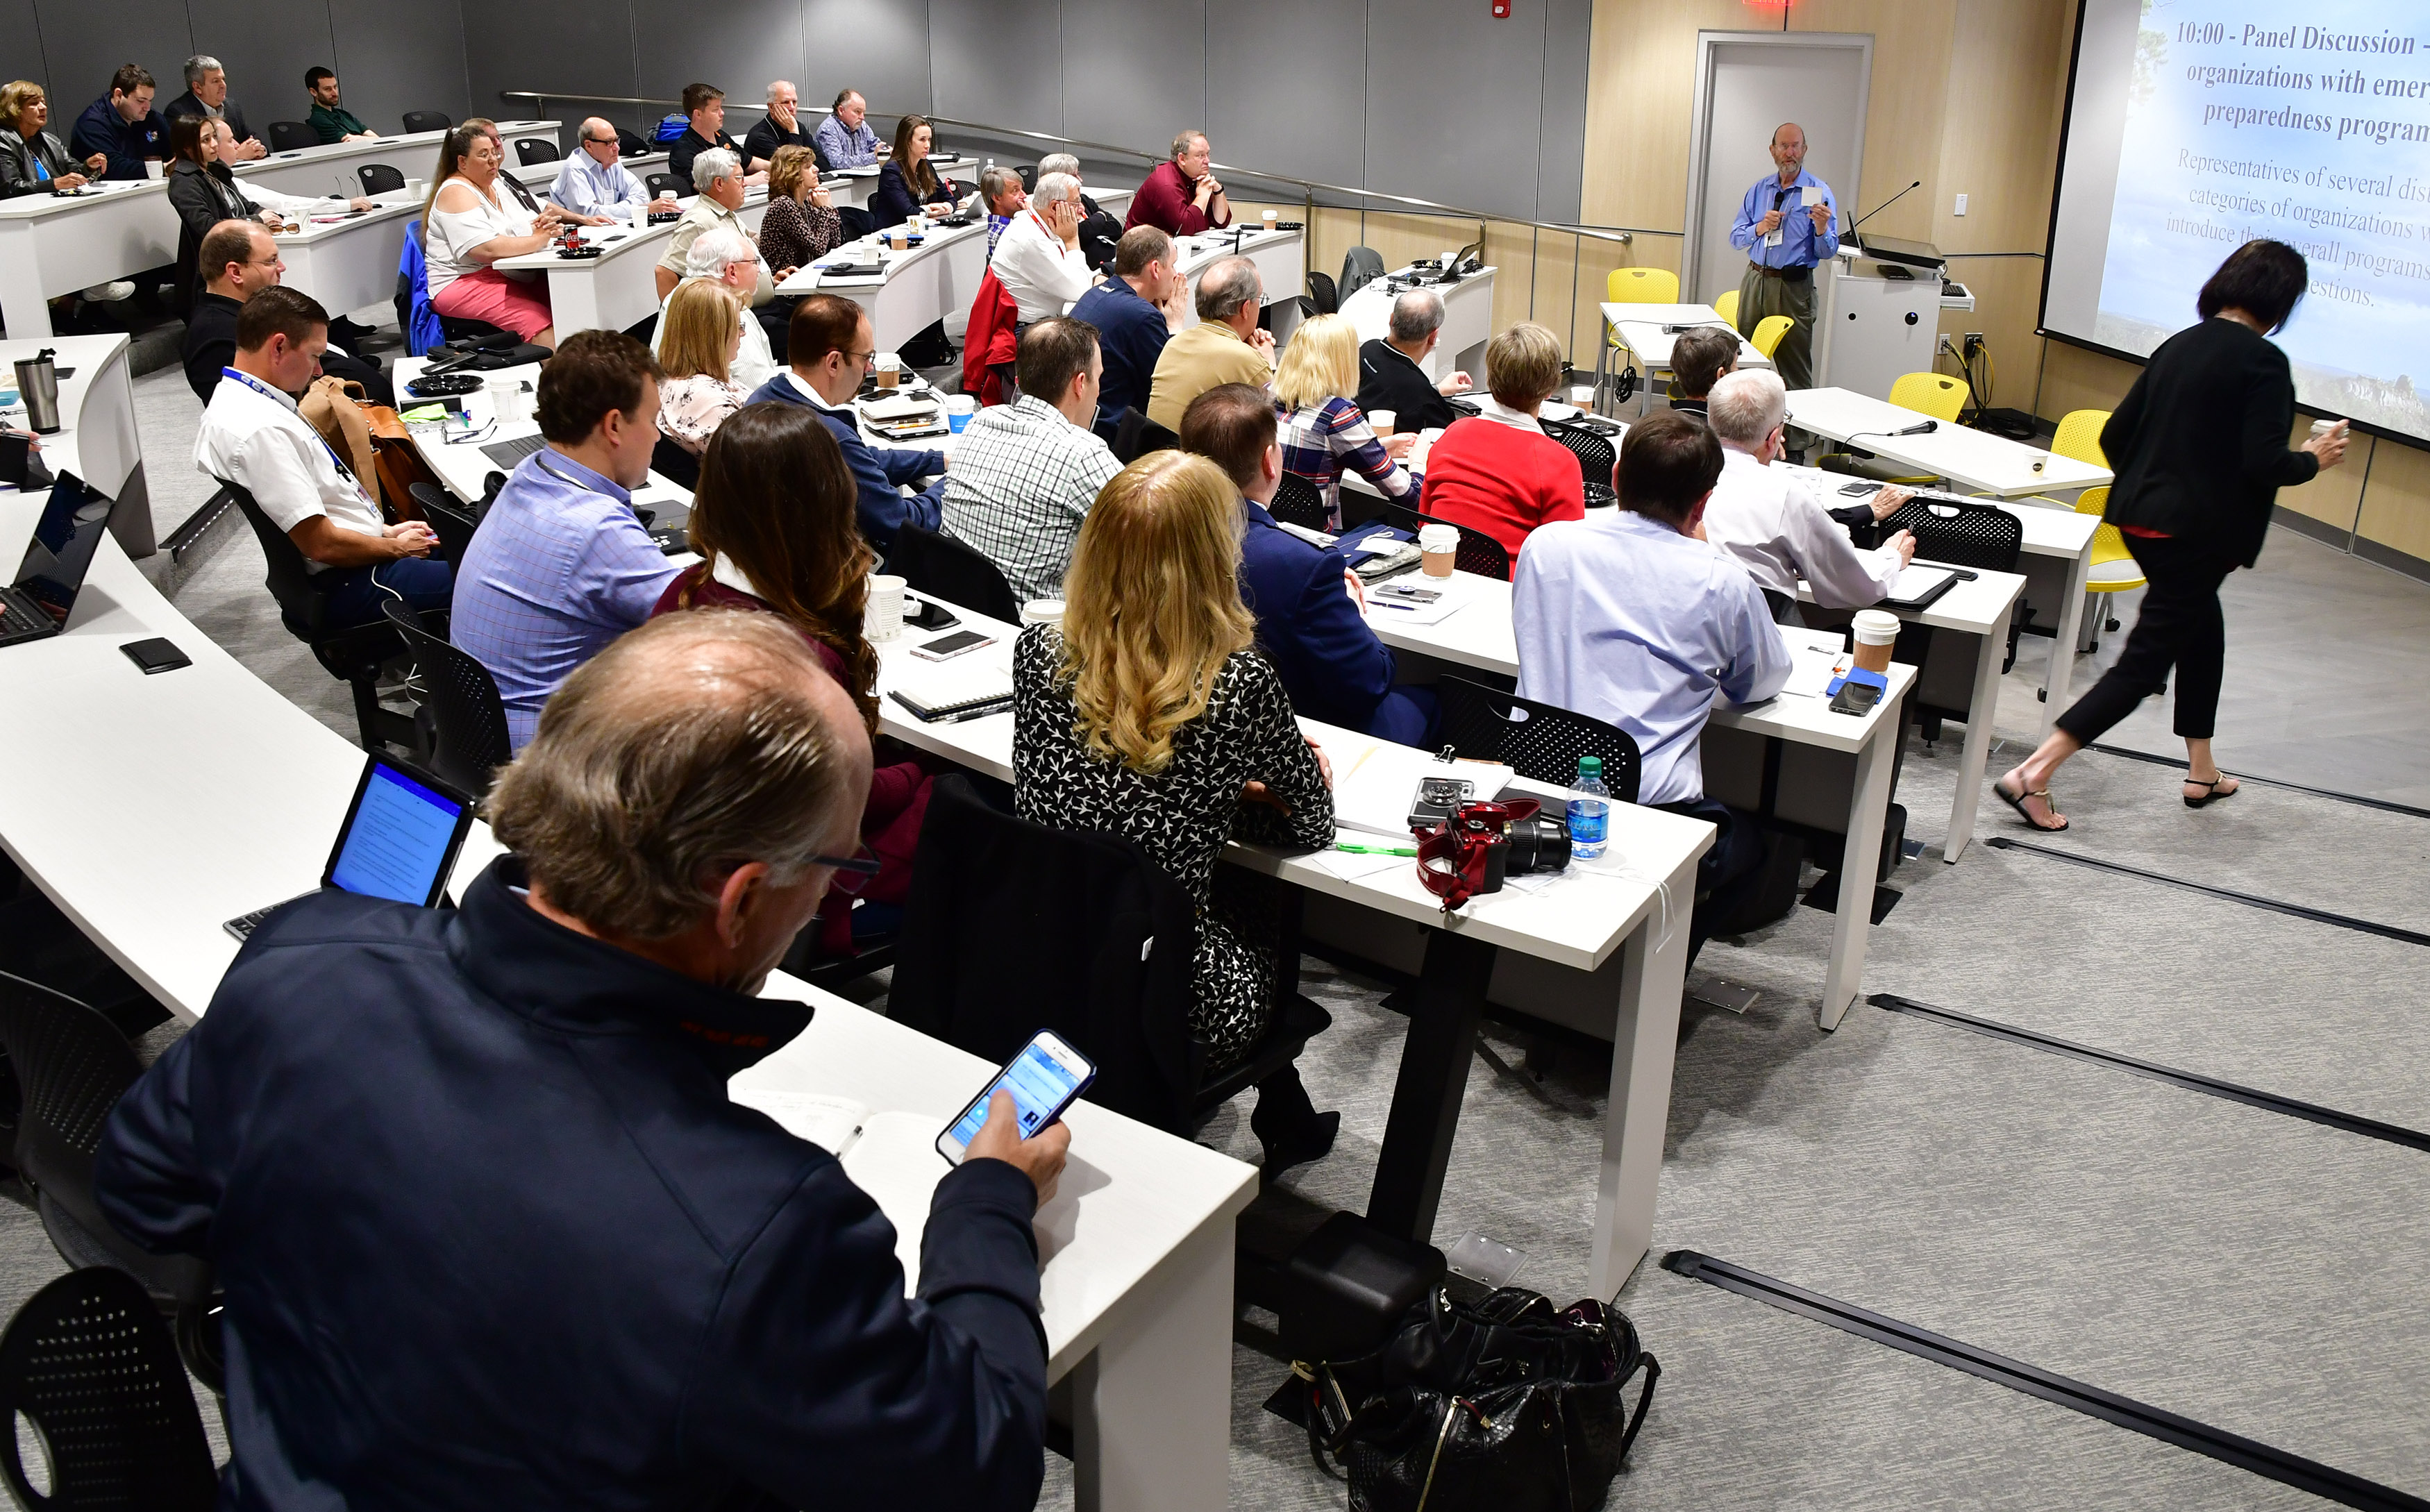 Members of the Air Care Alliance attend Air Care 2018, a general aviation emergency and disaster preparedness summit at the AOPA You Can Fly campus in Frederick, Maryland, April 20, 2018. Photo by David Tulis.